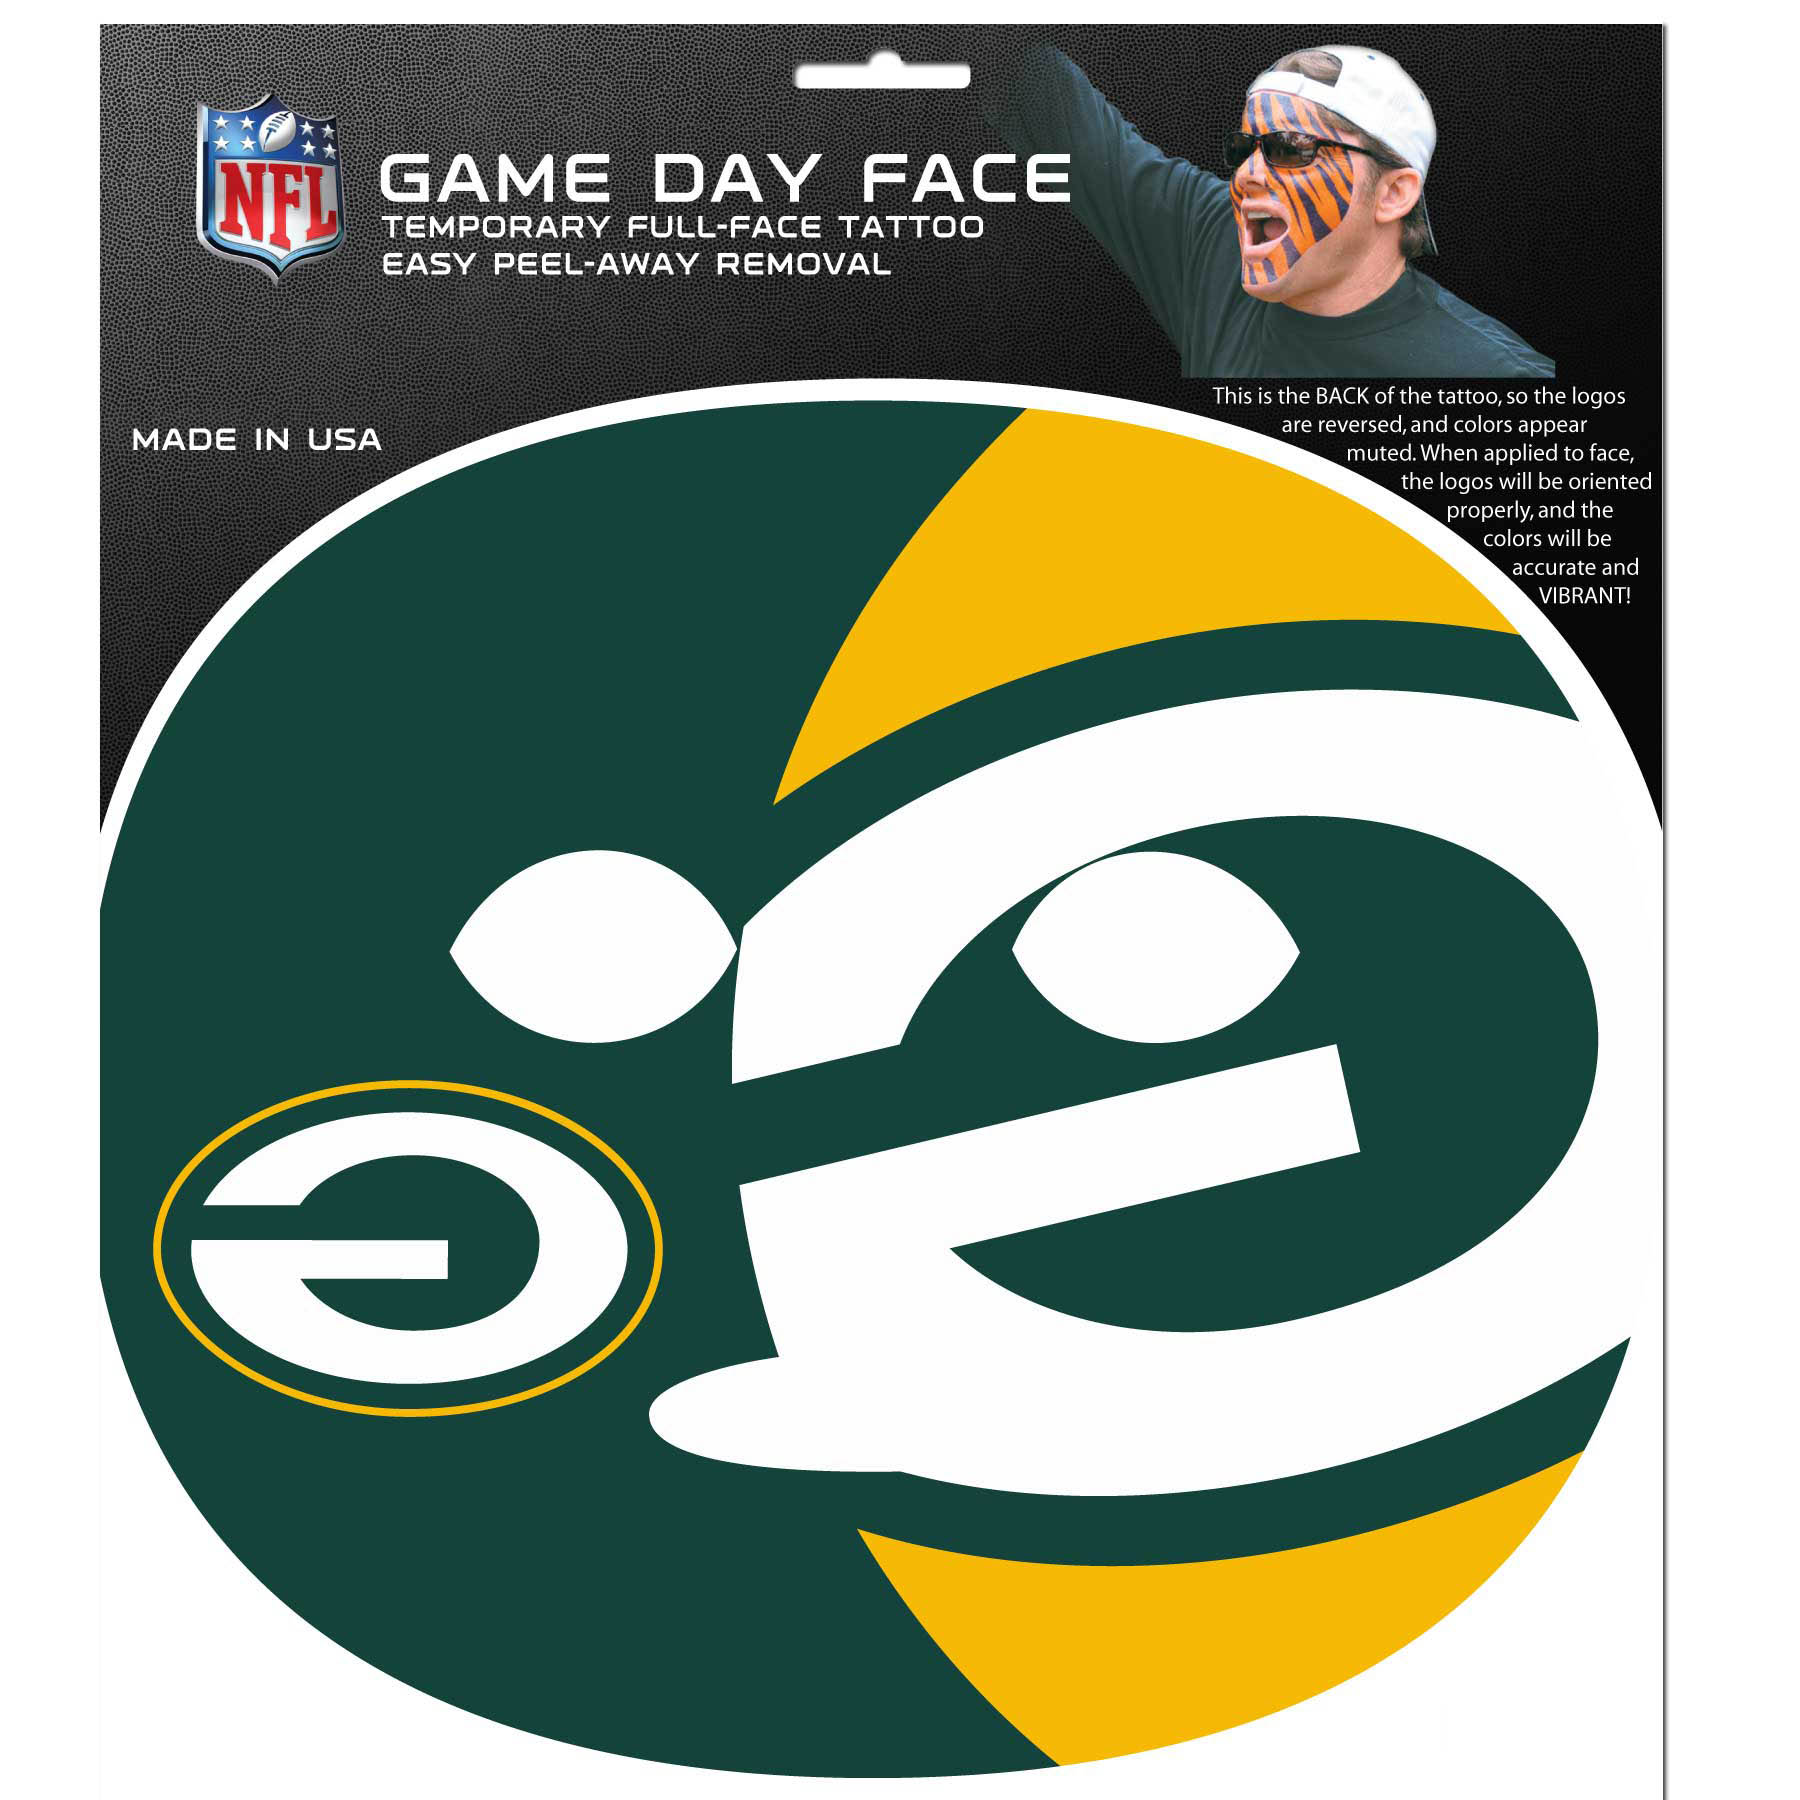 Green Bay Packers Set of 8 Game Day Faces - No better way to show your team pride than by painting your face. Siskiyou's Game Day Face Temporary Tattoo isn't your typical face paint. It is a water based application that doesn't smudge, smear or sweat off while you're wearing it and easily peels off after you're done celebrating your team's big Win! The temporary tattoo is large enough to trim down to fit your face. Our Game Day Face Temporary Tattoo's are fun for fans of all ages. You may have seen our product before, these are the same Temporary Face Tattoos as pitched on ABC's Shark Tank.